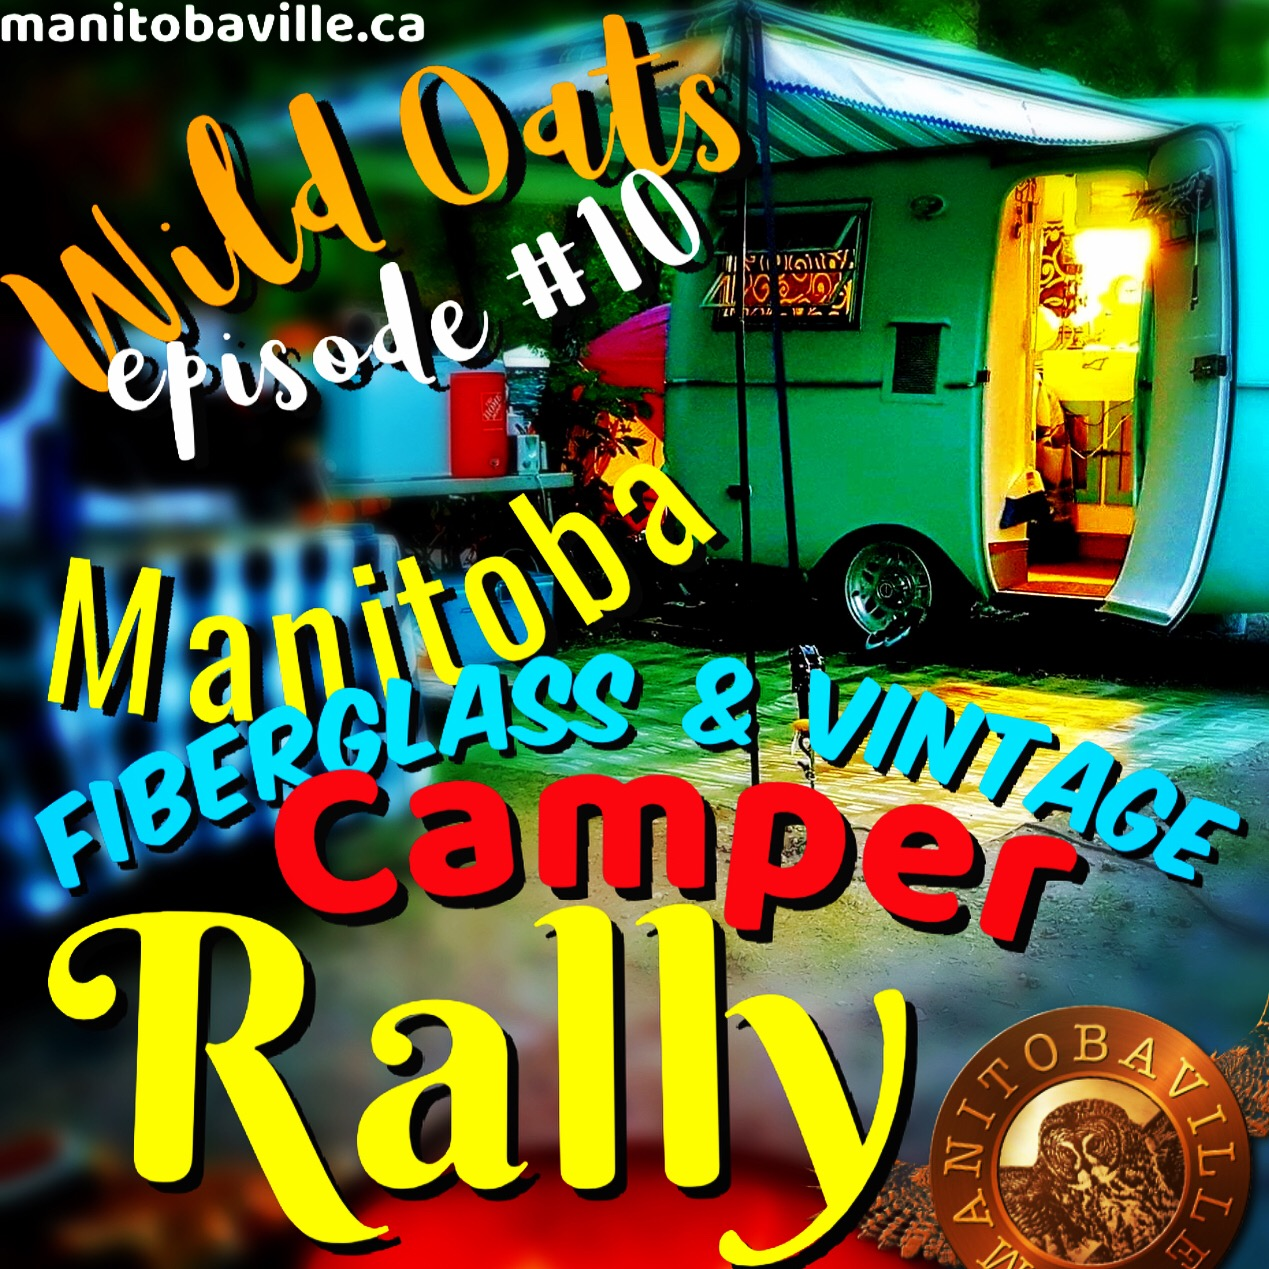 manitobaville manitoba podcast wild oats podcast fiberglass and vintage camper rally st malo august 16-18.JPG